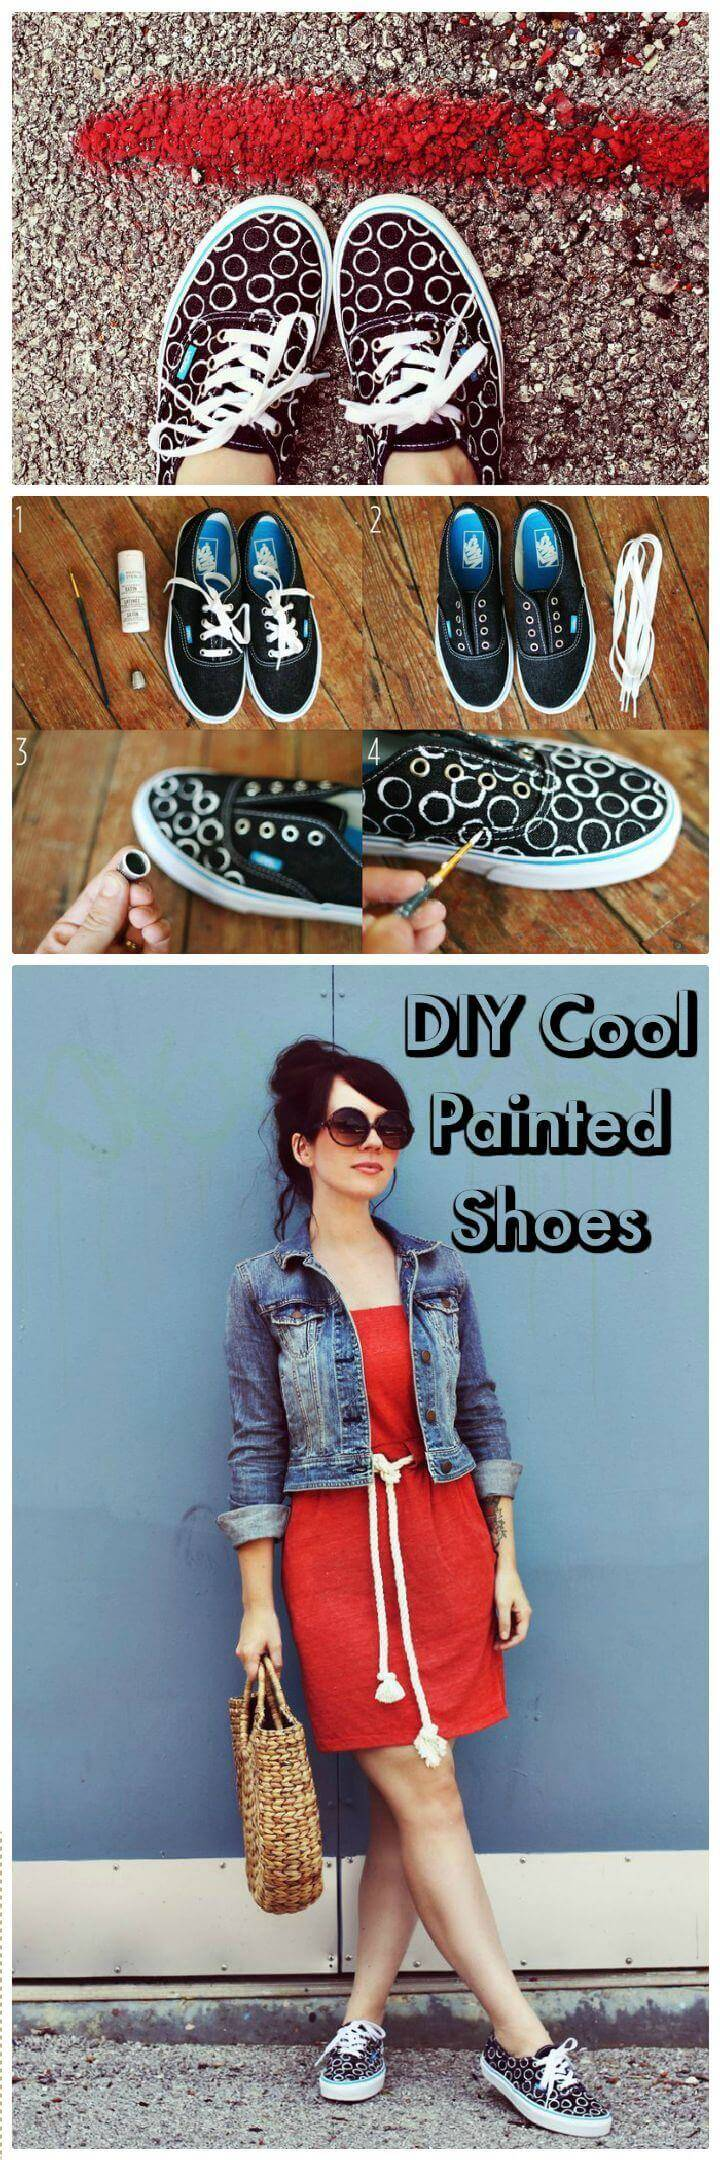 DIY Cool Painted Shoes